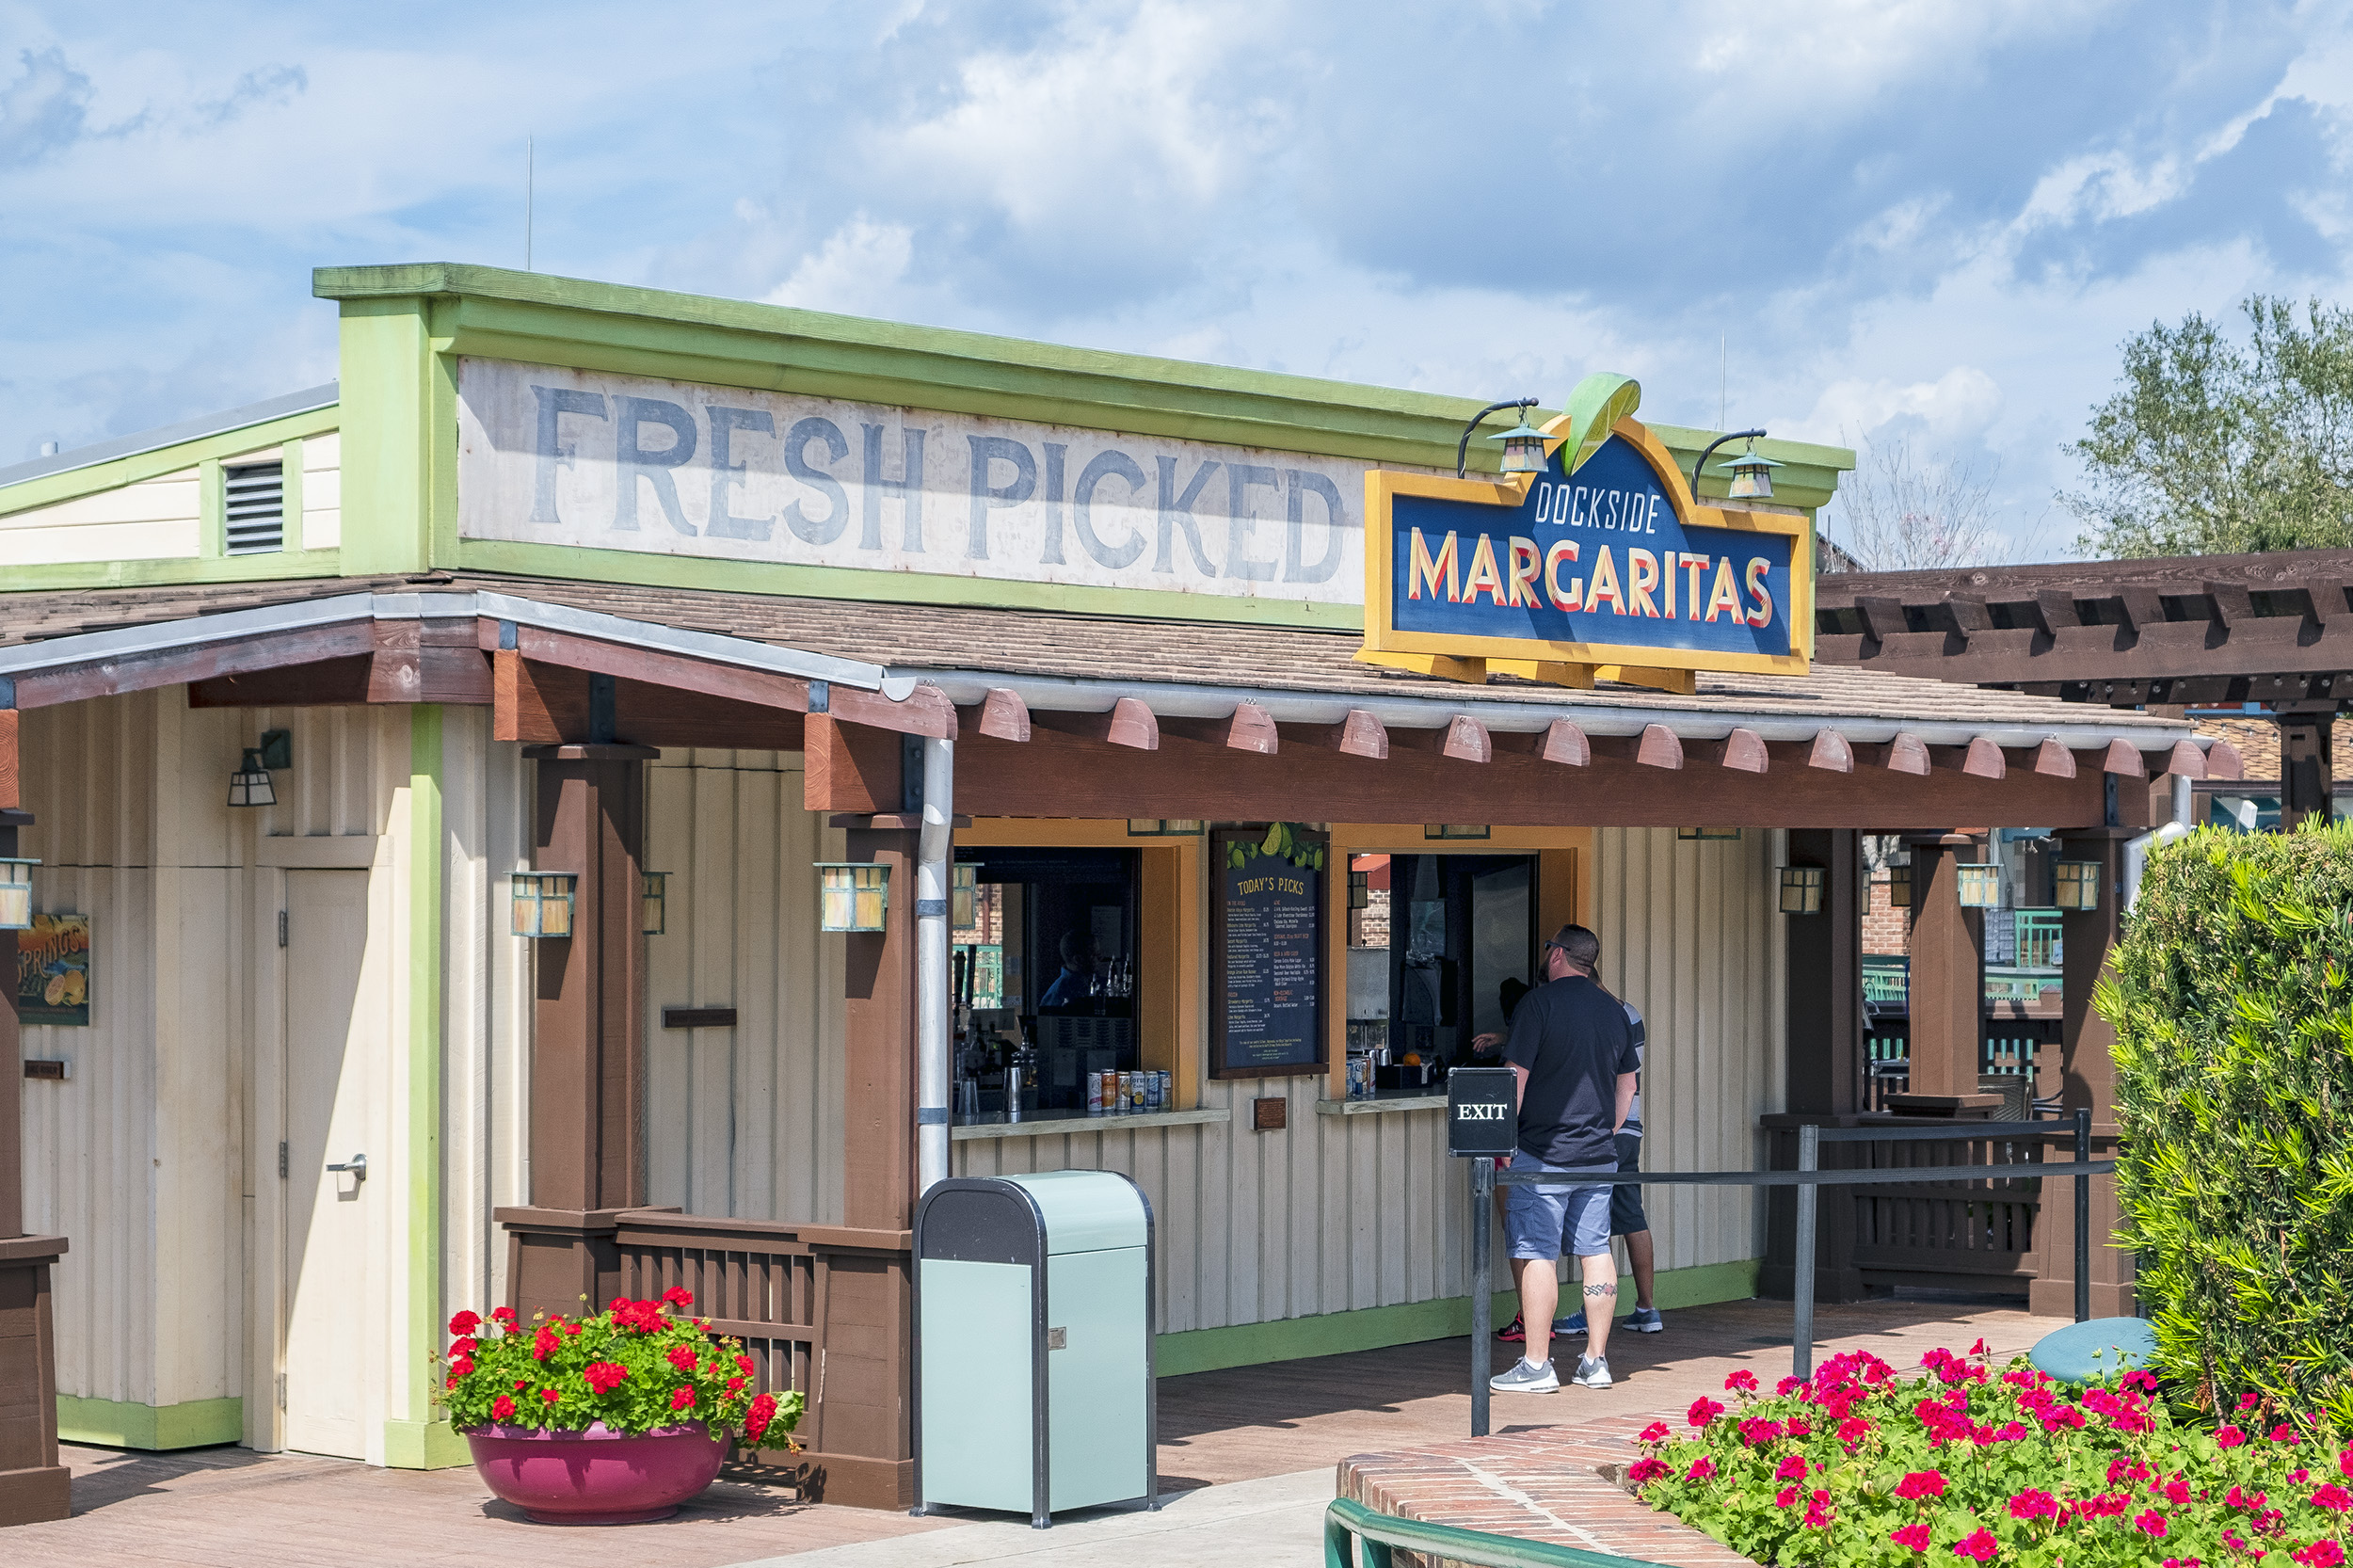 Disney Springs Dockside Margaritas